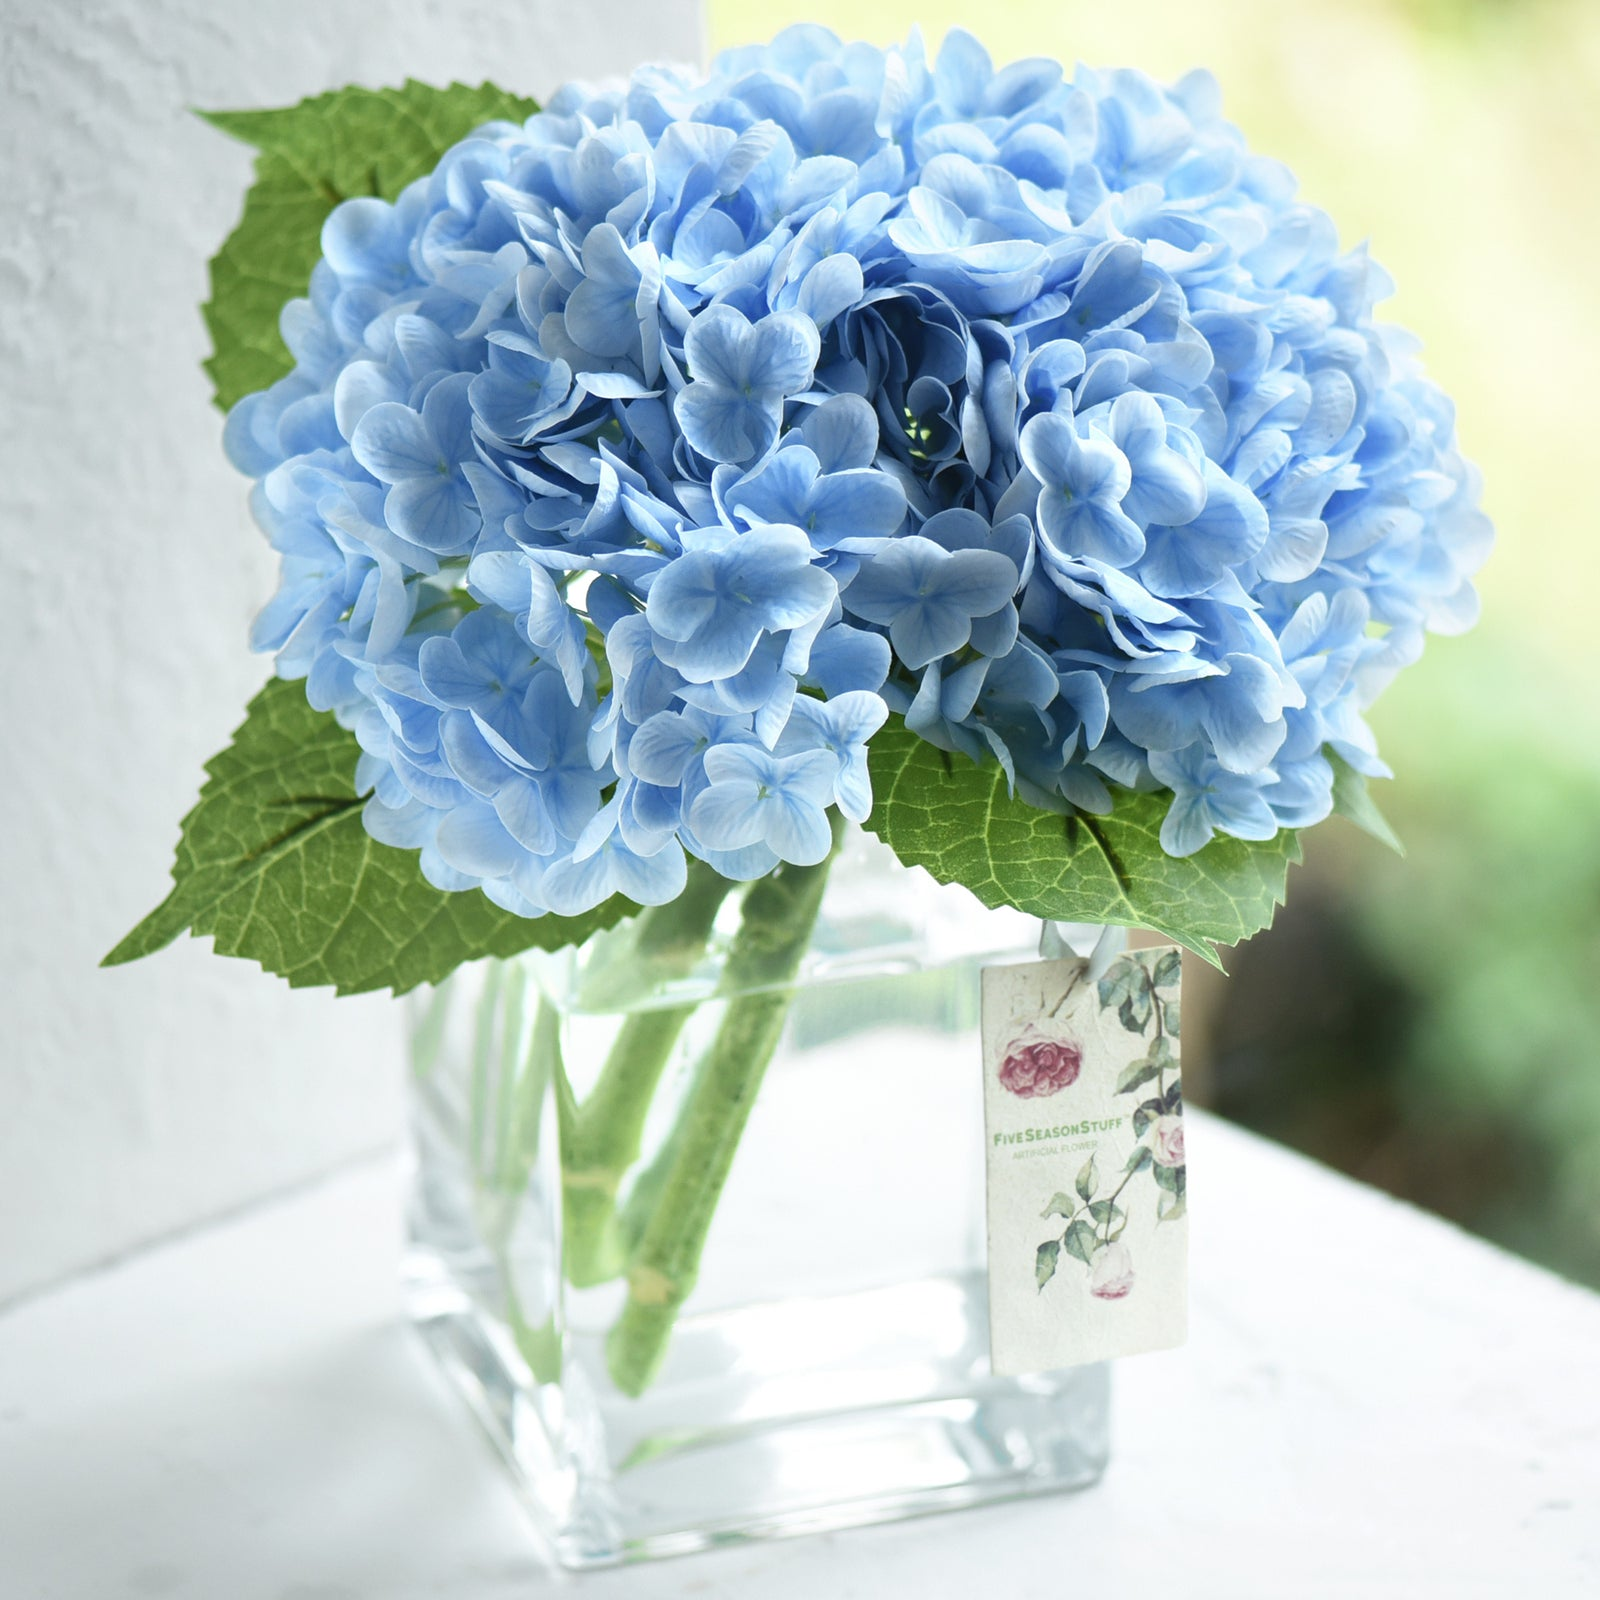 FiveSeasonStuff 2 Stems Real Touch Petals and Leaves Artificial Hydrangea Flowers Long Stem Floral Arrangement | for Wedding Bridal Party Home Décor DIY Floral Decoration (Blue)